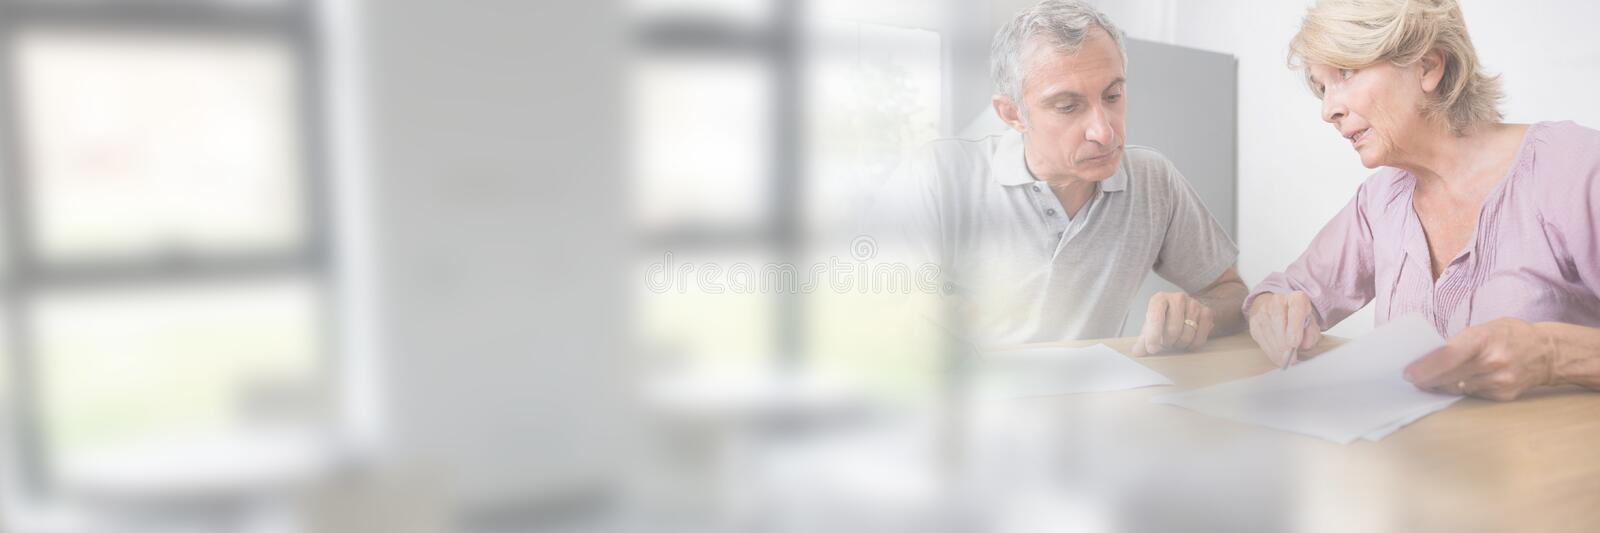 Older People Signing Paper Agreement with window transition stock photography